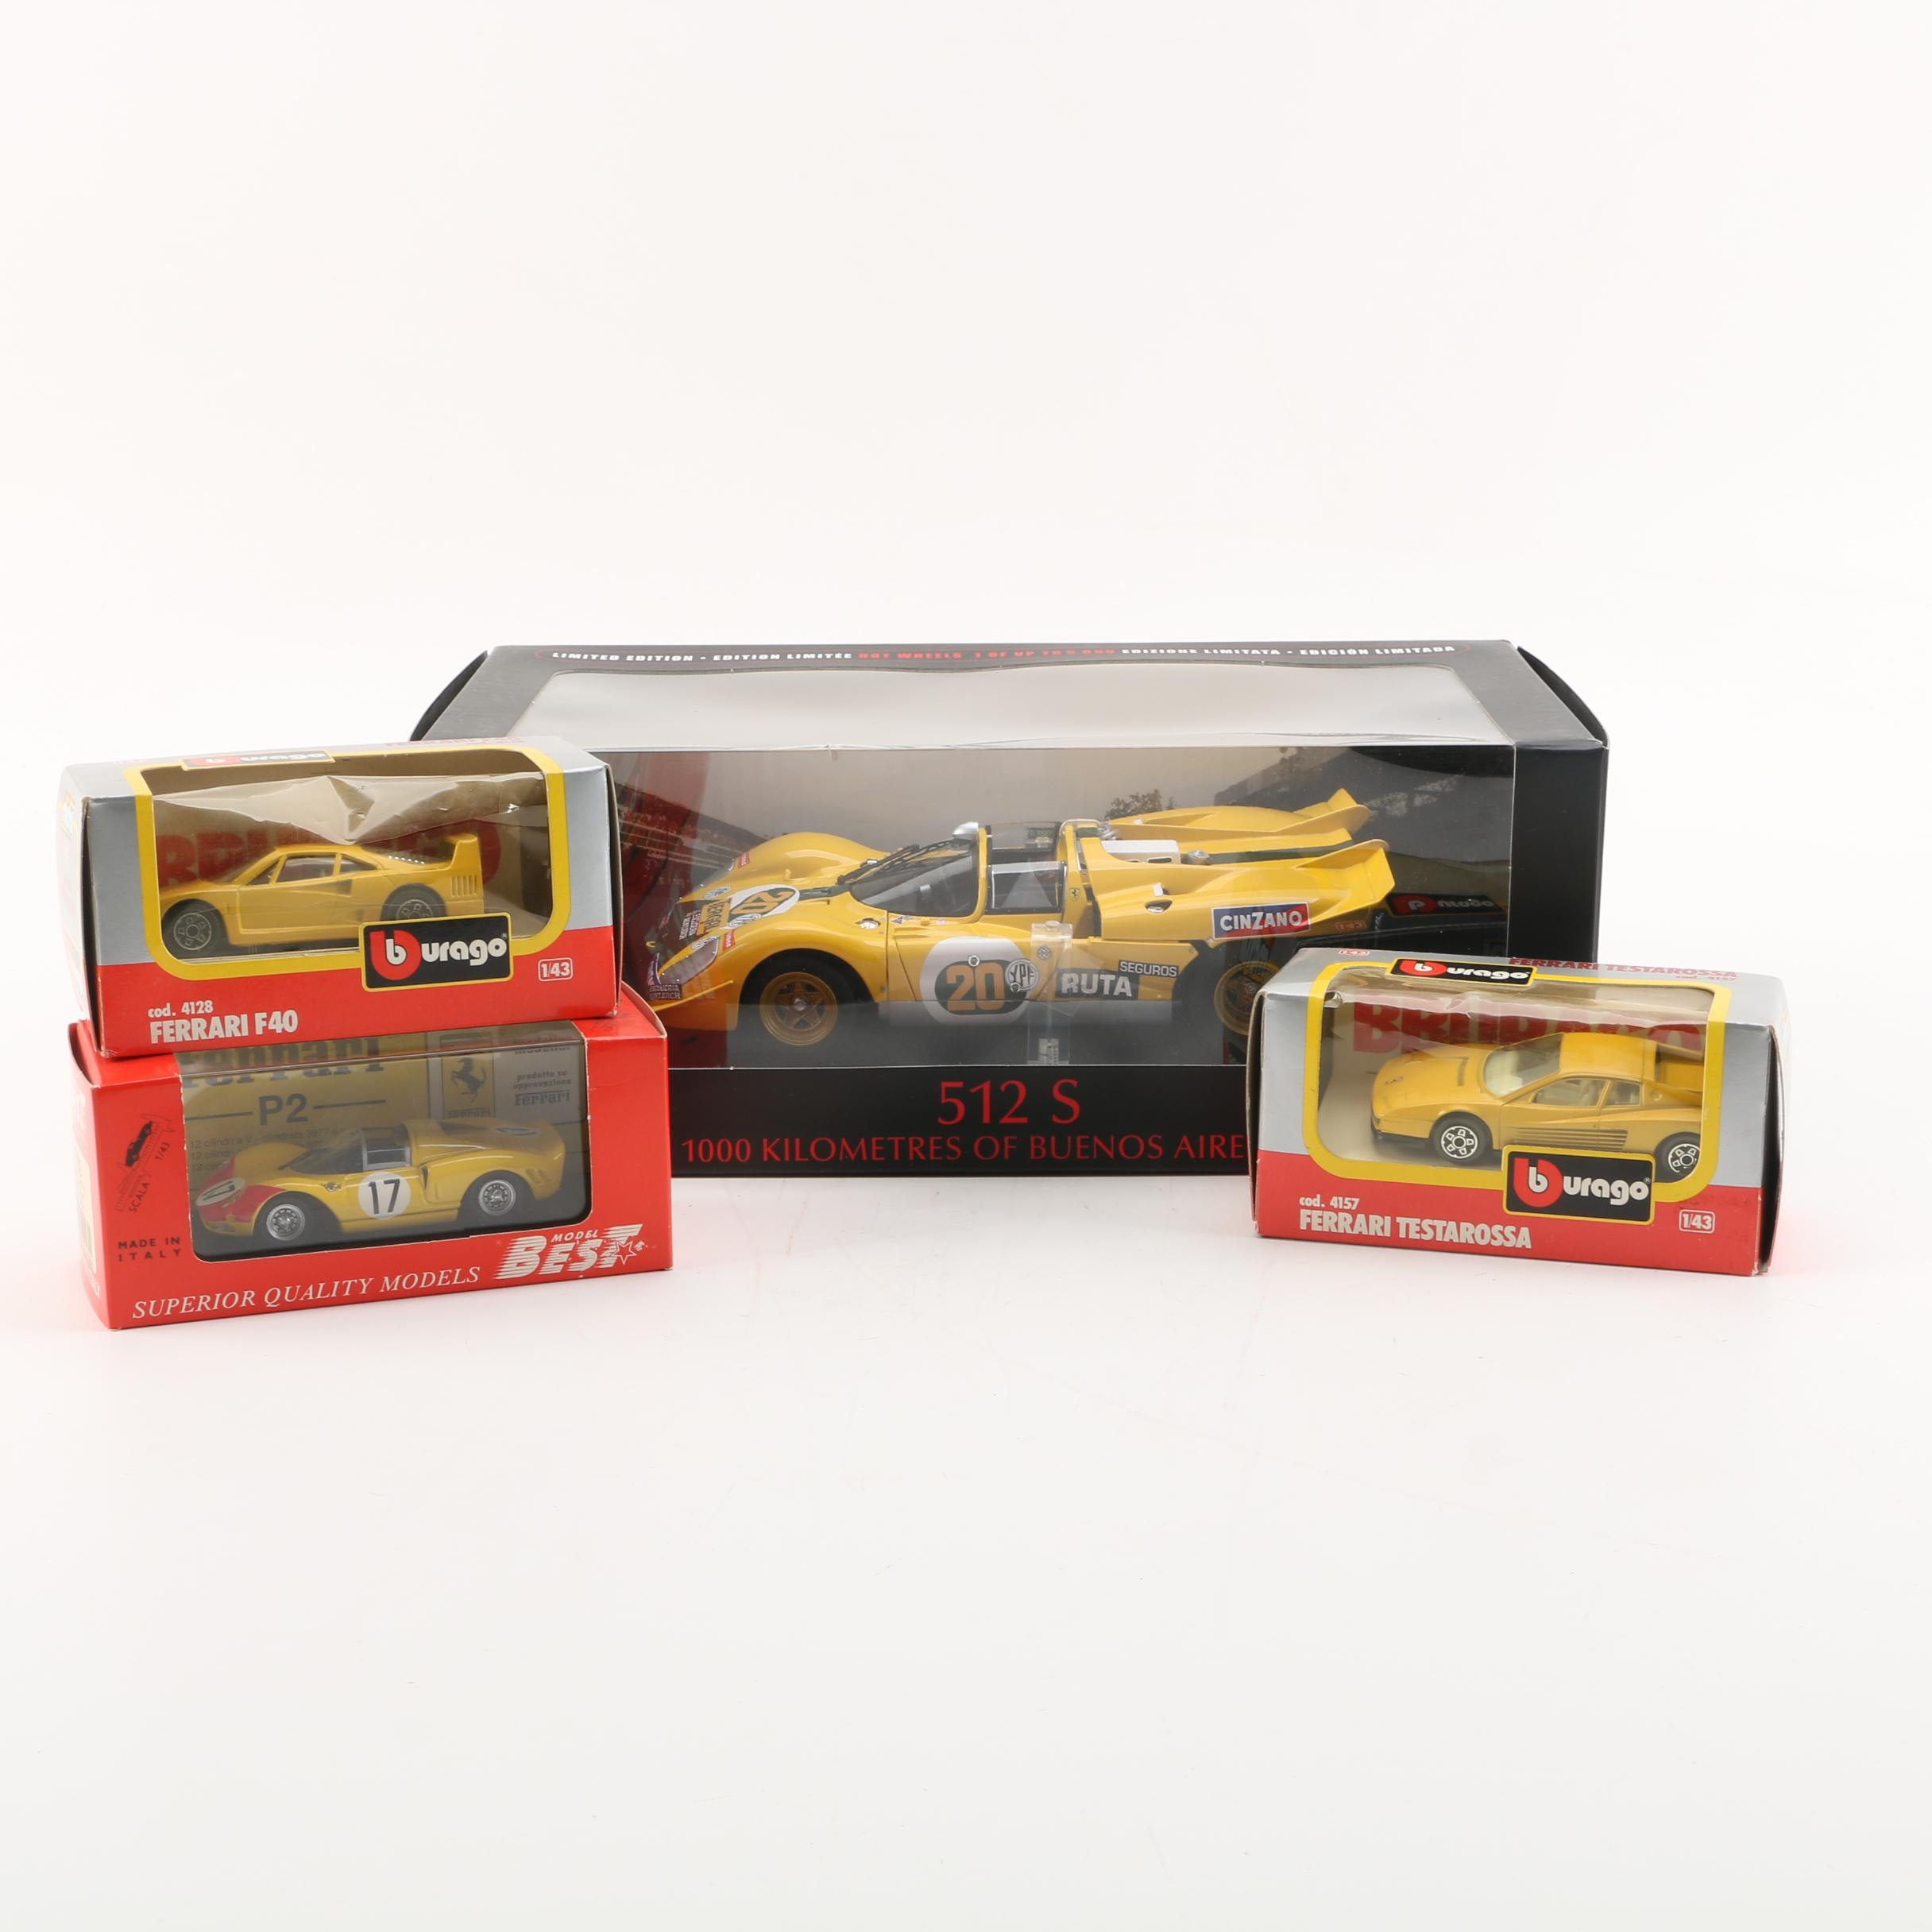 Ferrari Die-Cast Cars including Bburago